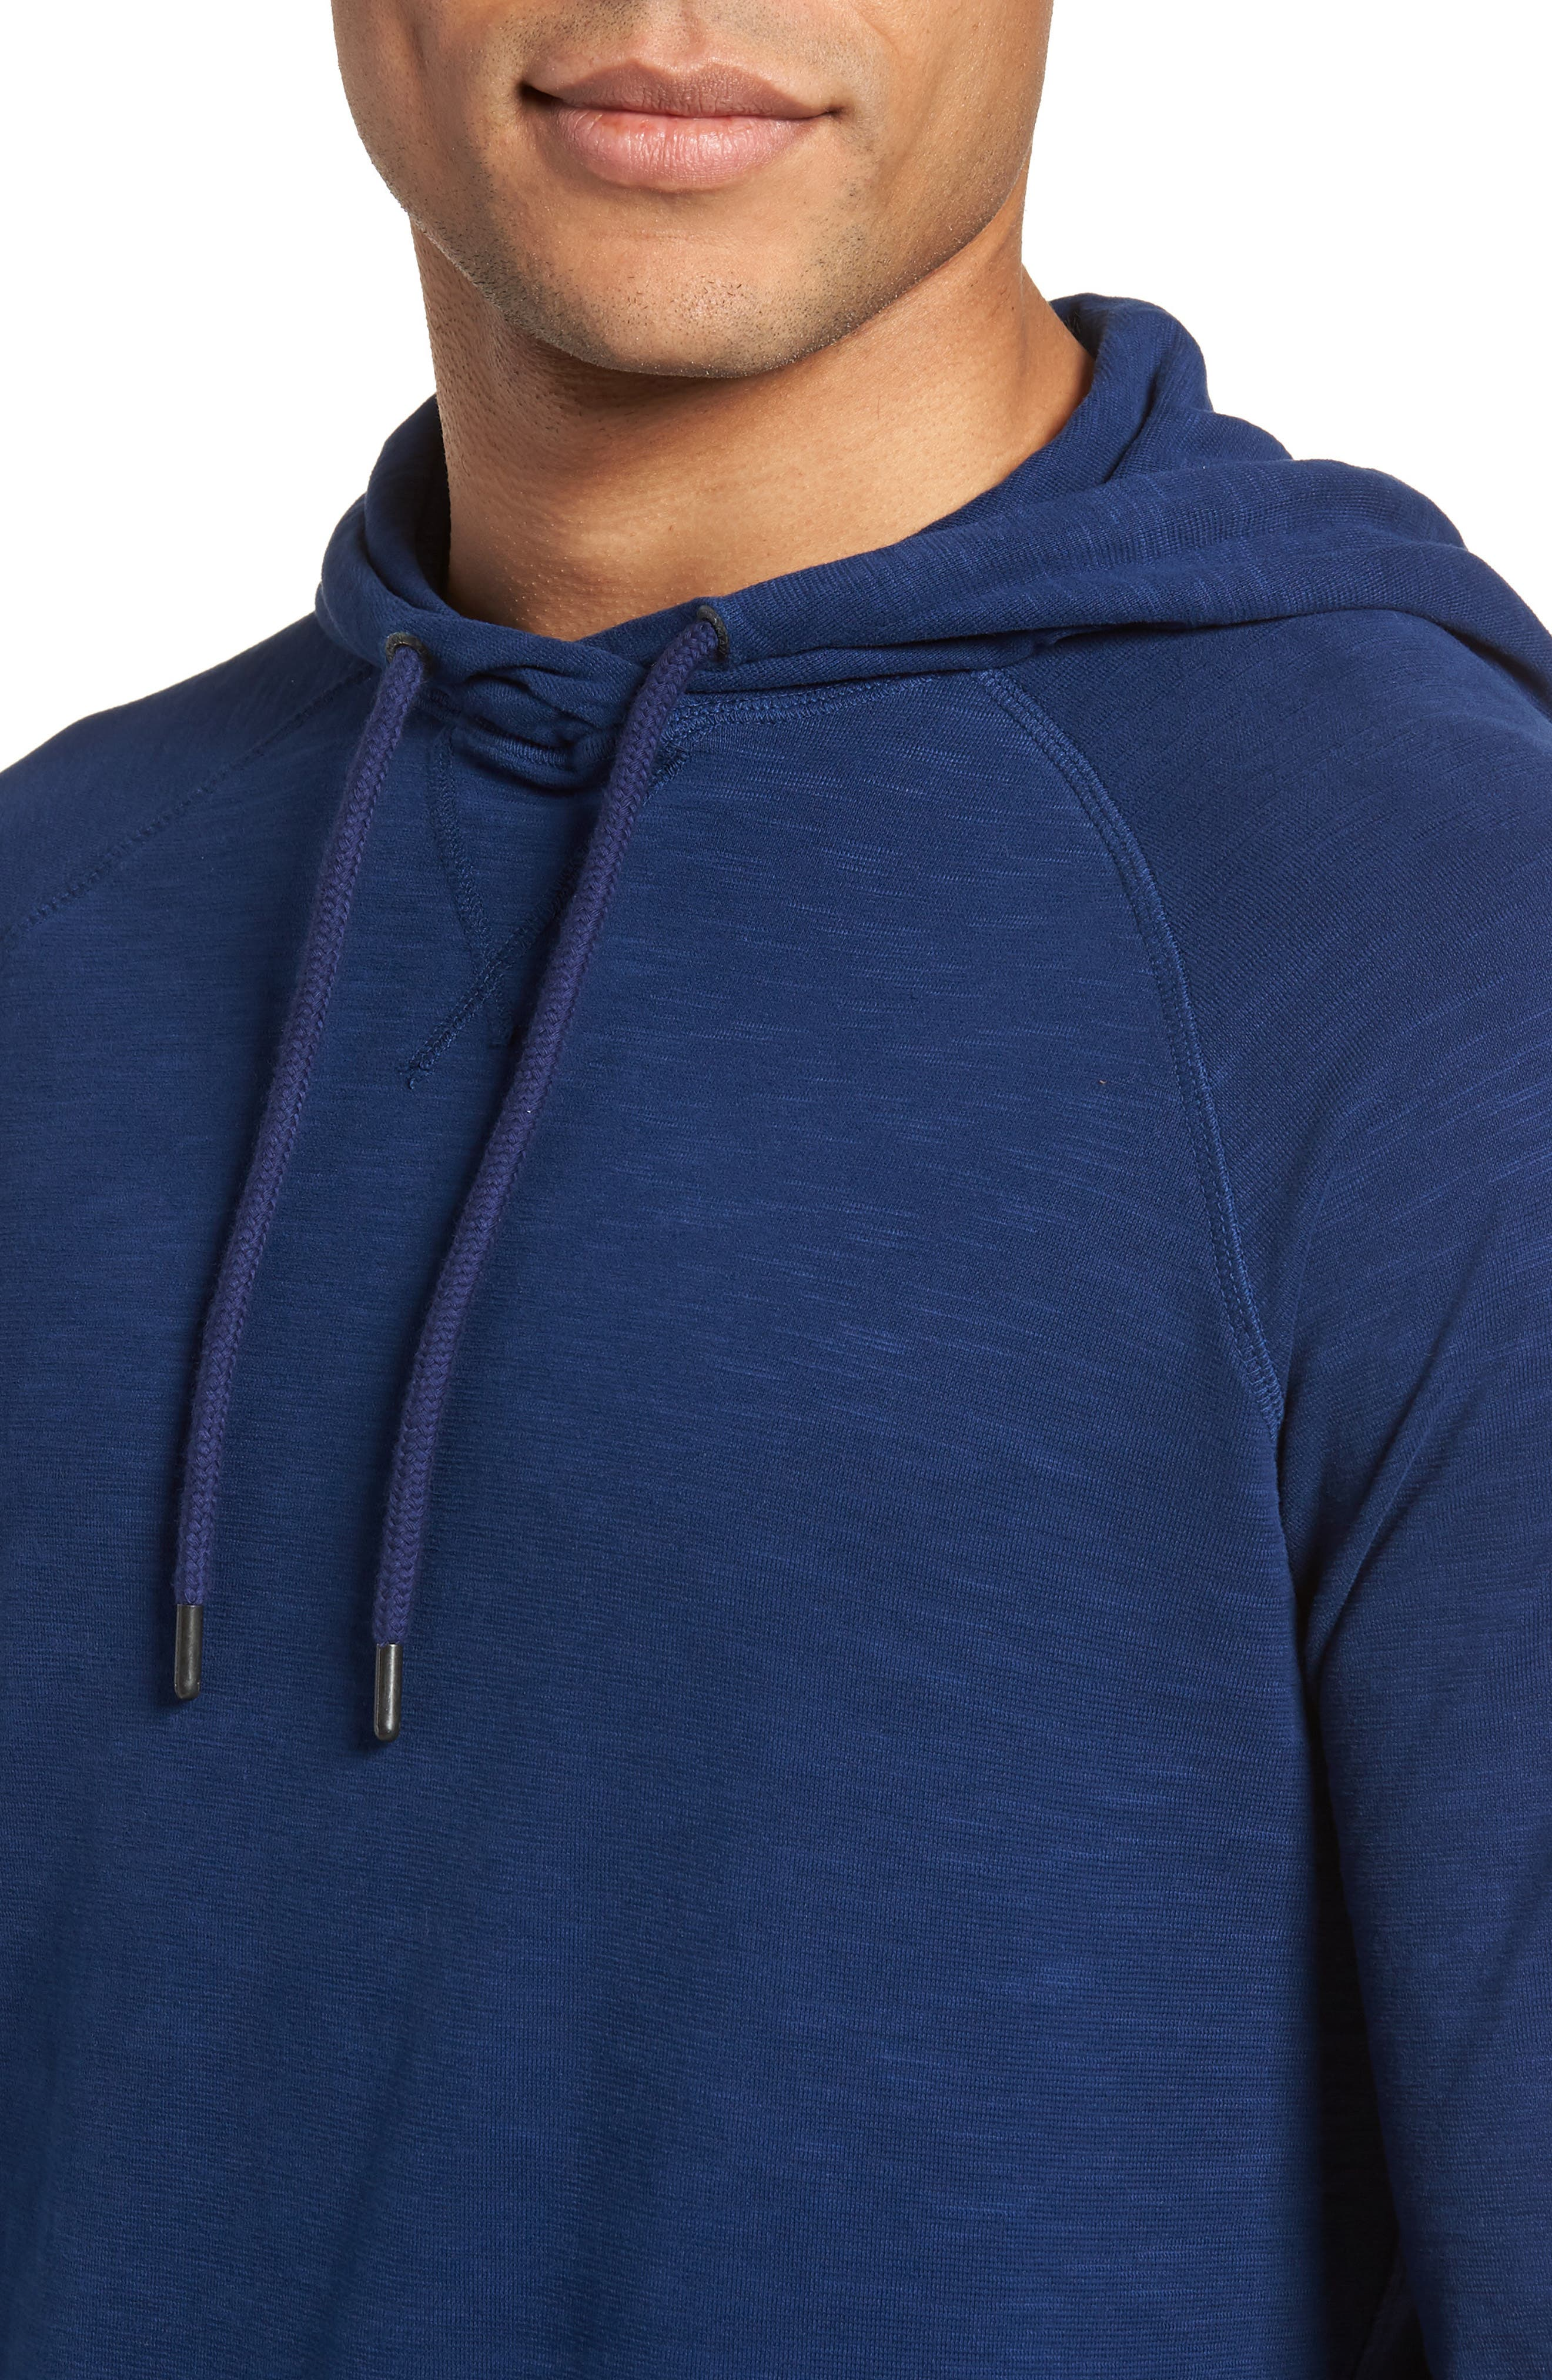 Trim Fit Pullover Hoodie,                             Alternate thumbnail 4, color,                             Blue